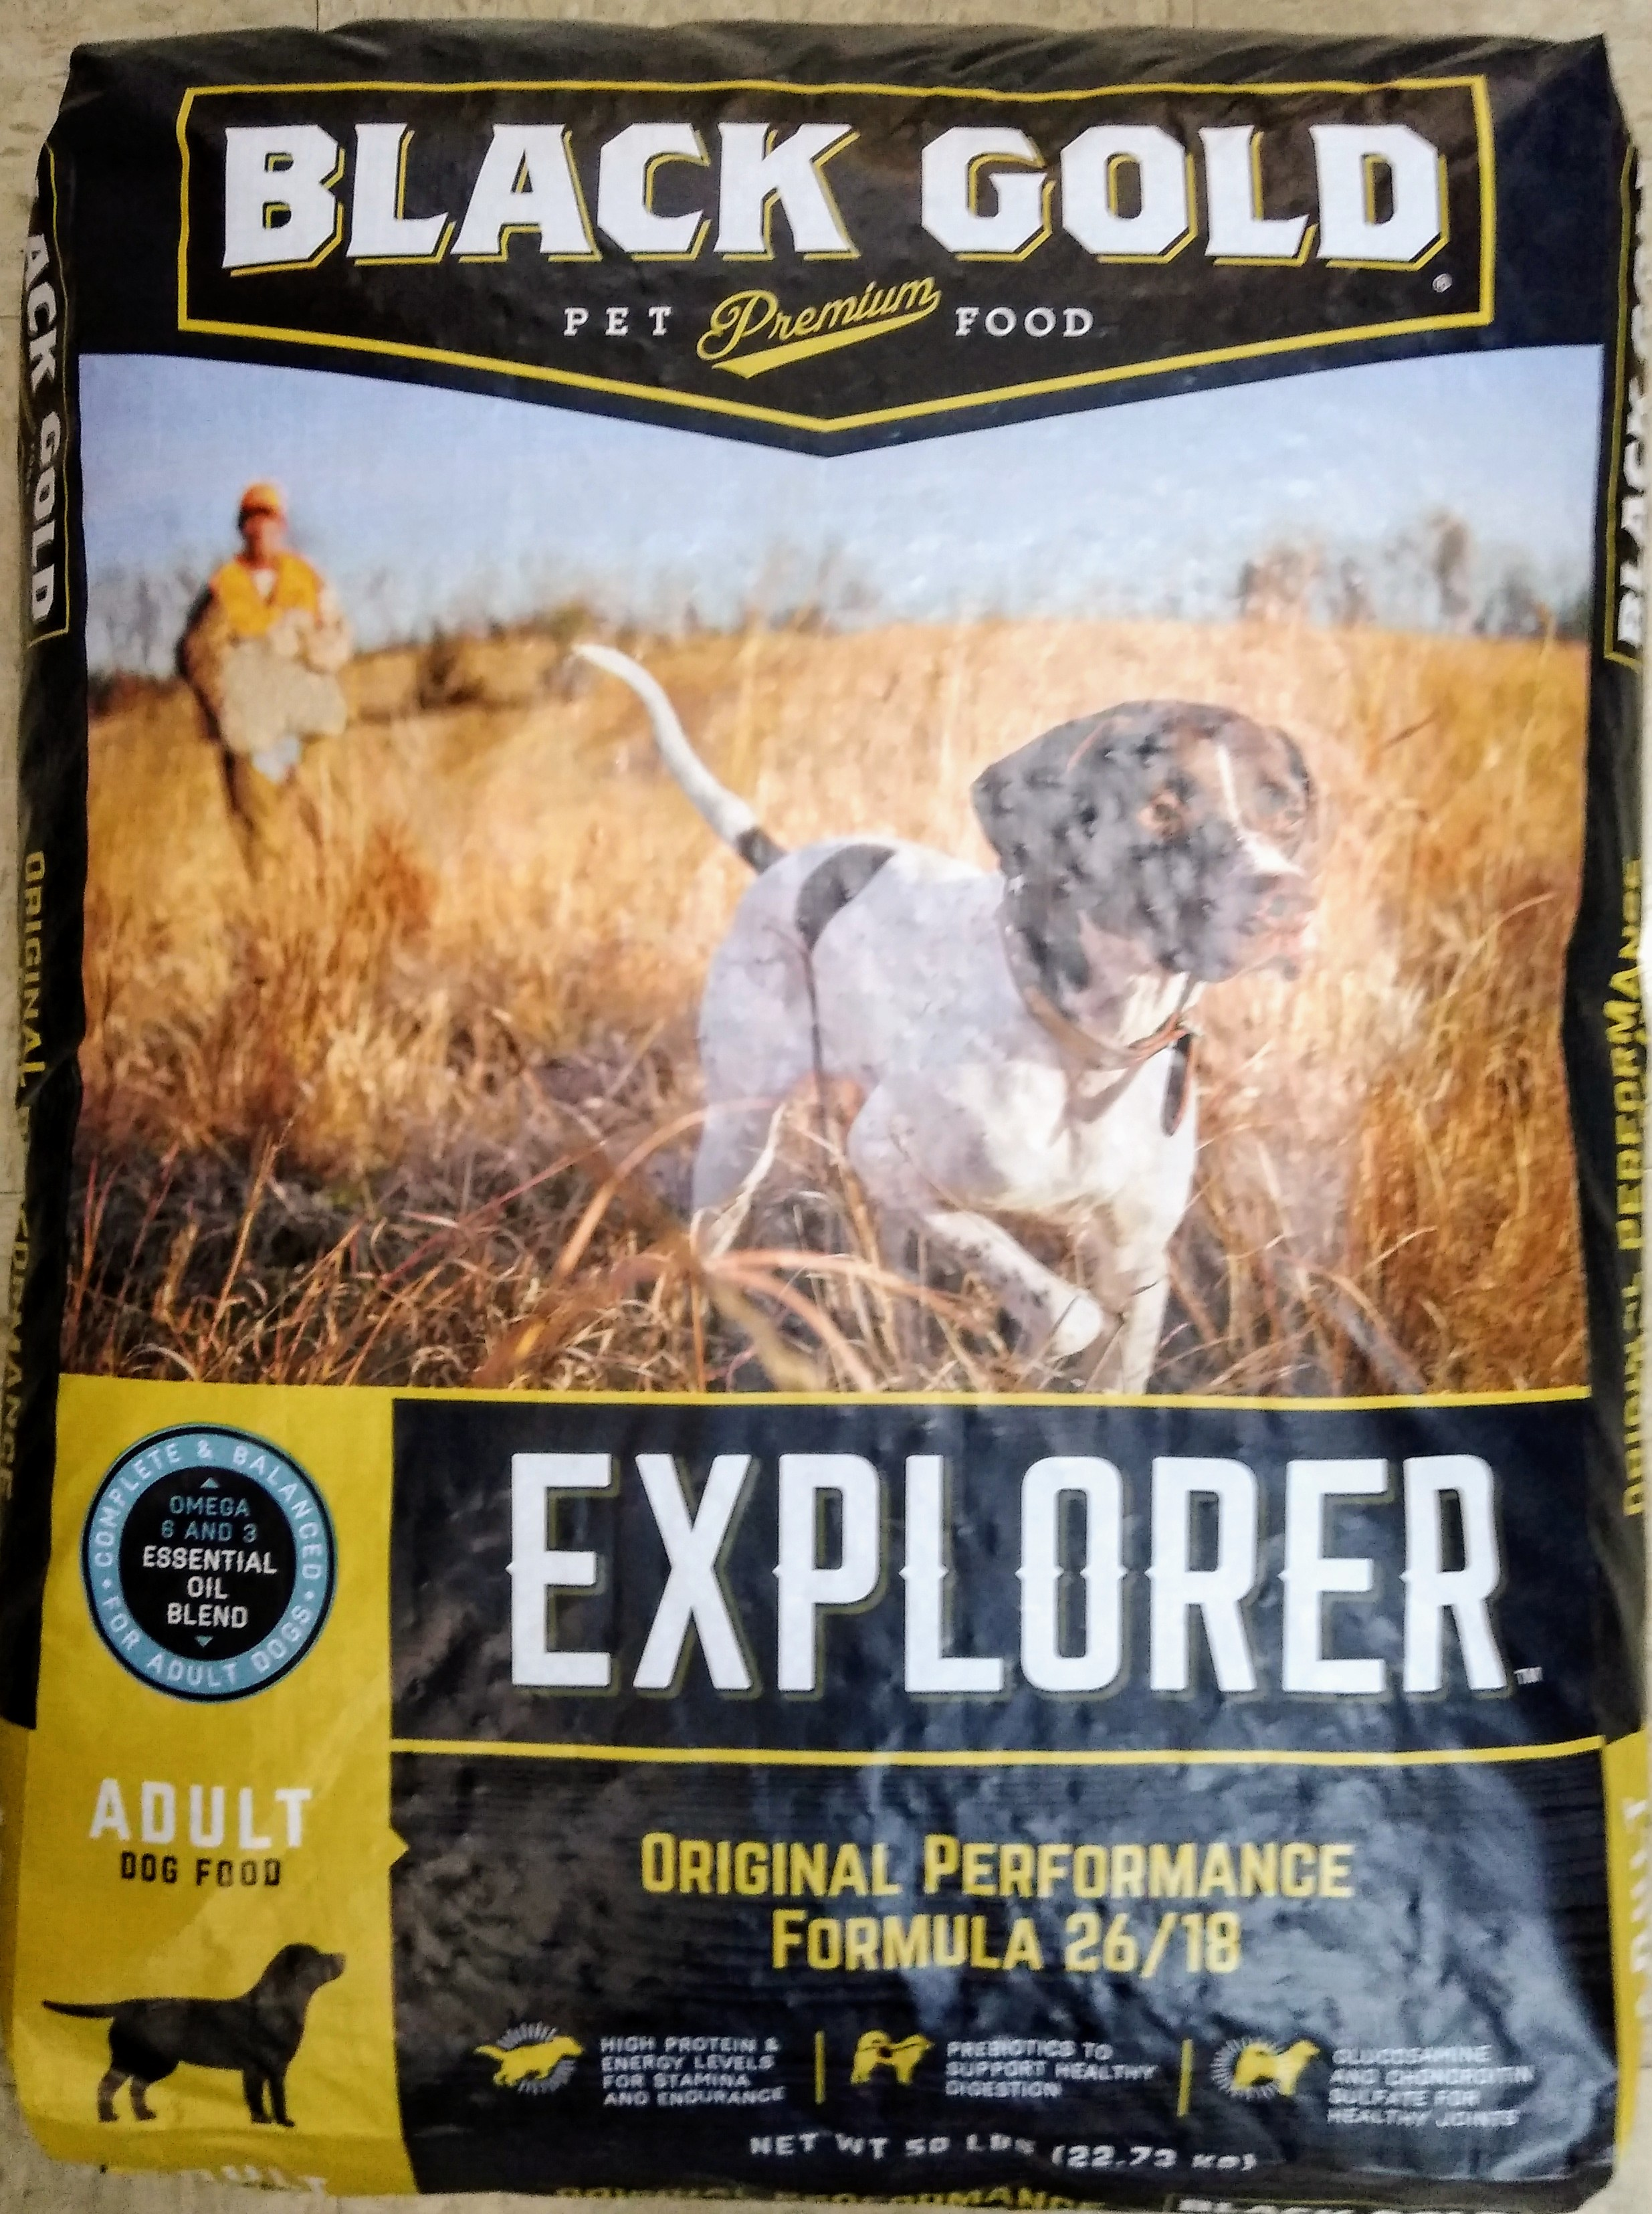 Black Gold Dog Food Performance50LB 26/18